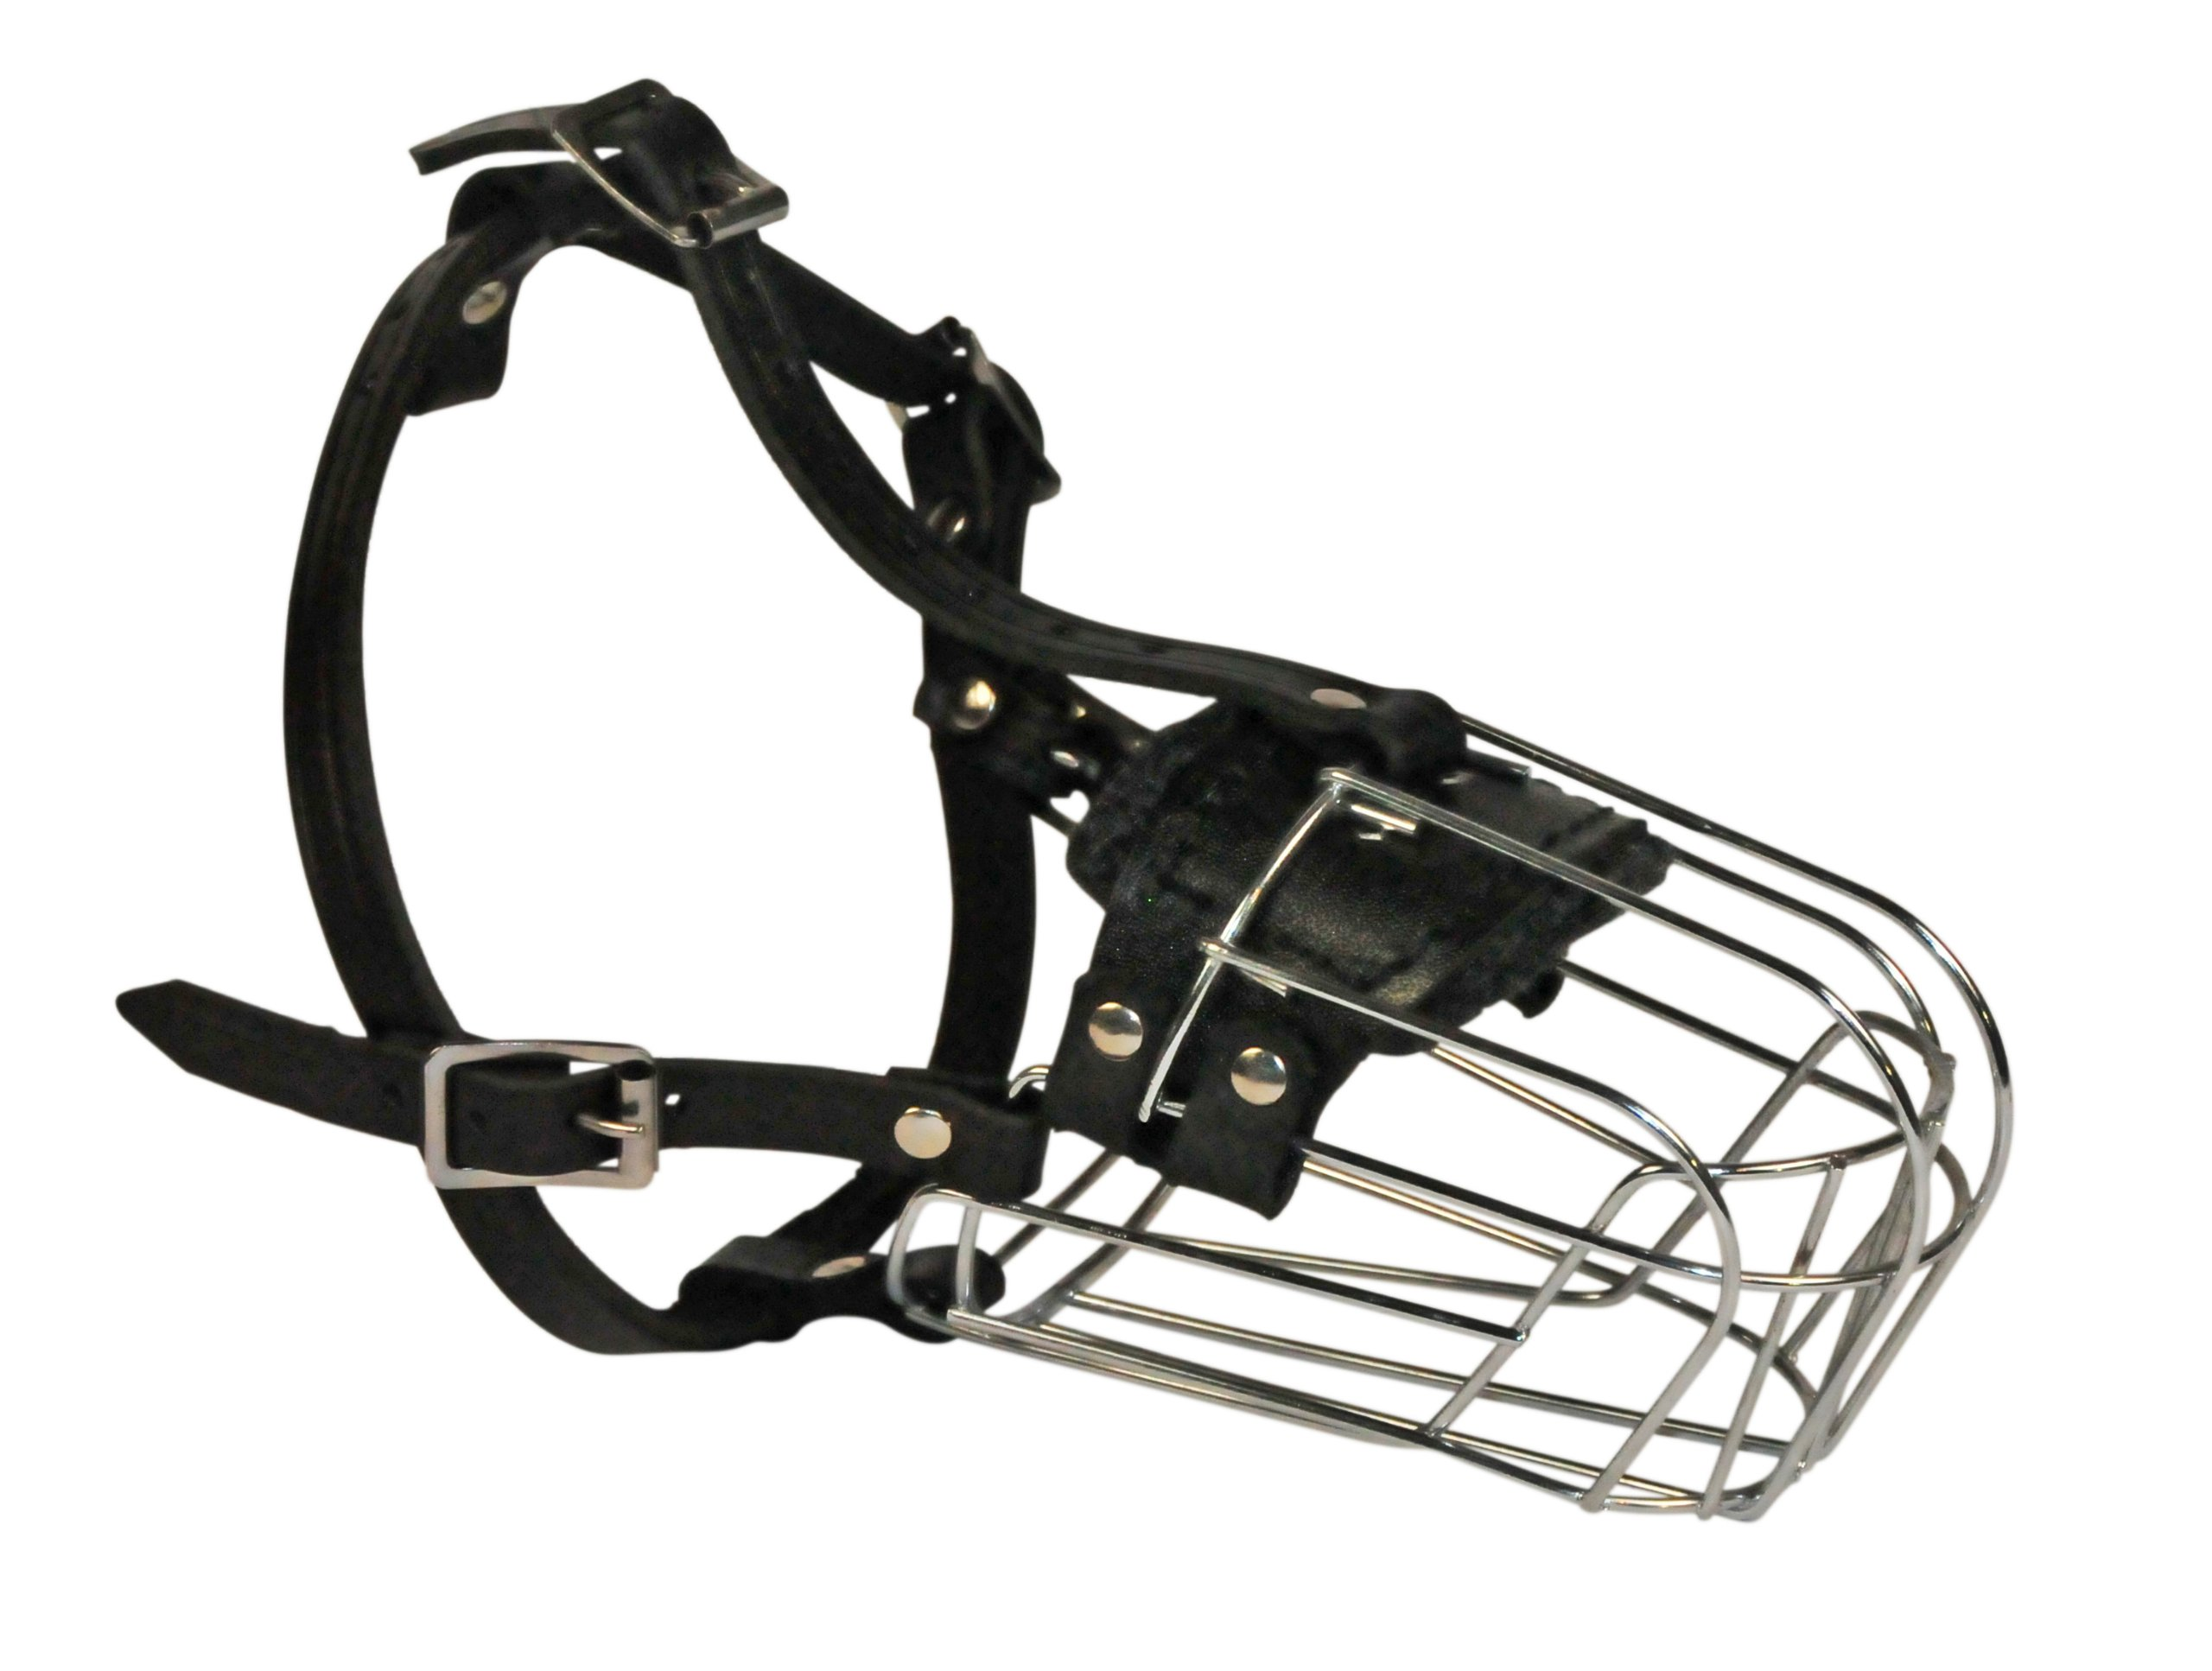 Dean and Tyler Wire Basket Muzzle, Size No. J1 - Dachshund